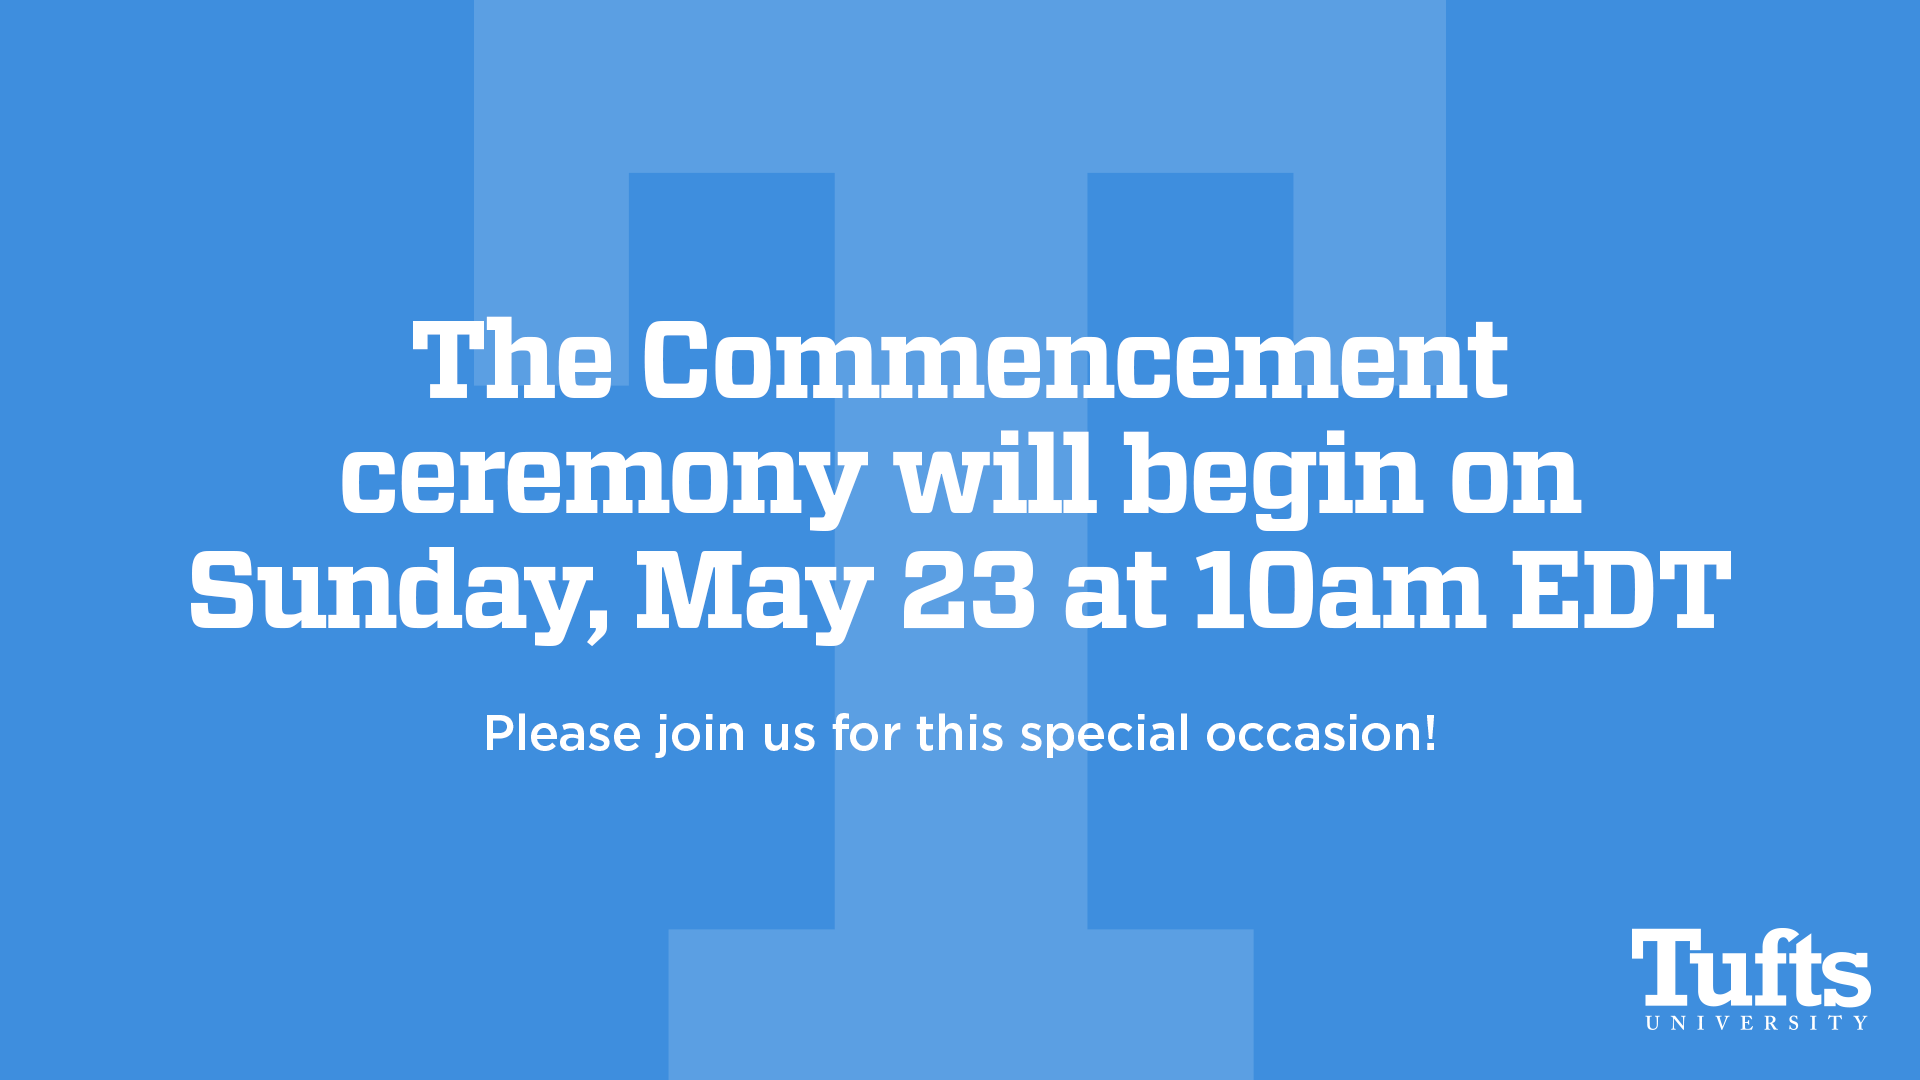 The Commencement ceremony will begin on Sunday, May 23 at 10 a.m. EDT